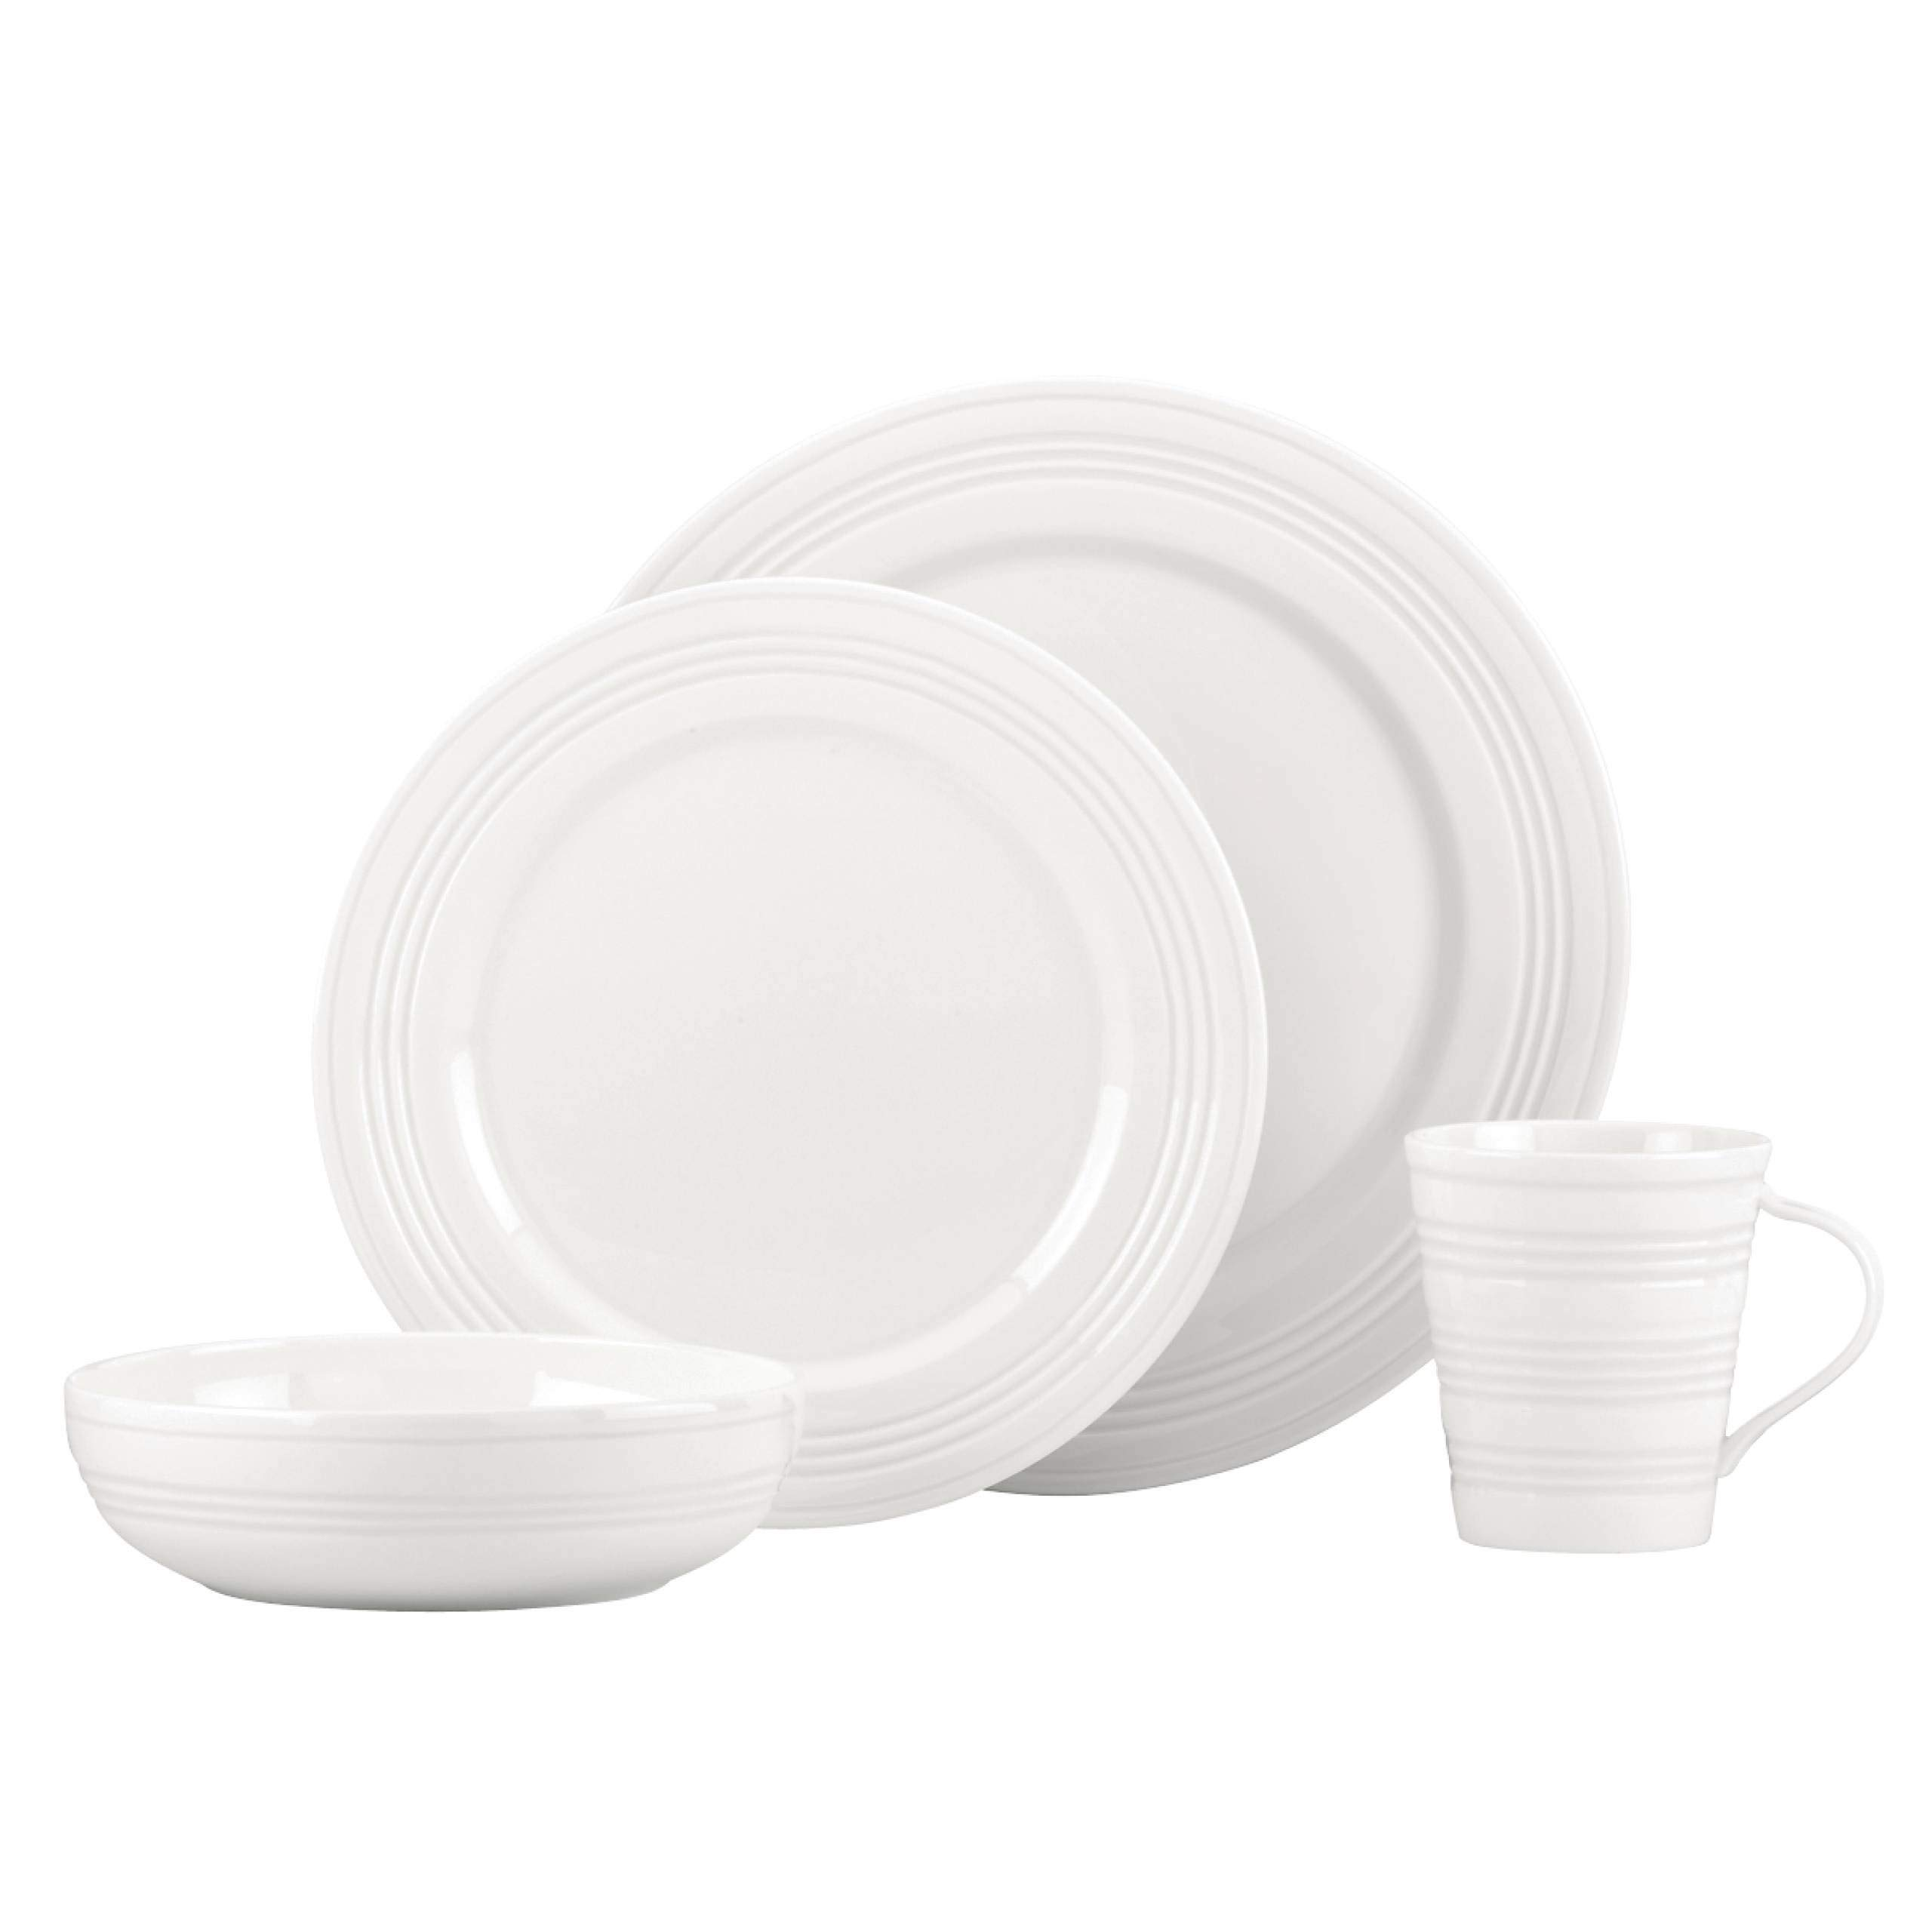 Lenox Tin Can Alley 4 Degree Bone China 4-Piece Place Setting, Service for 1